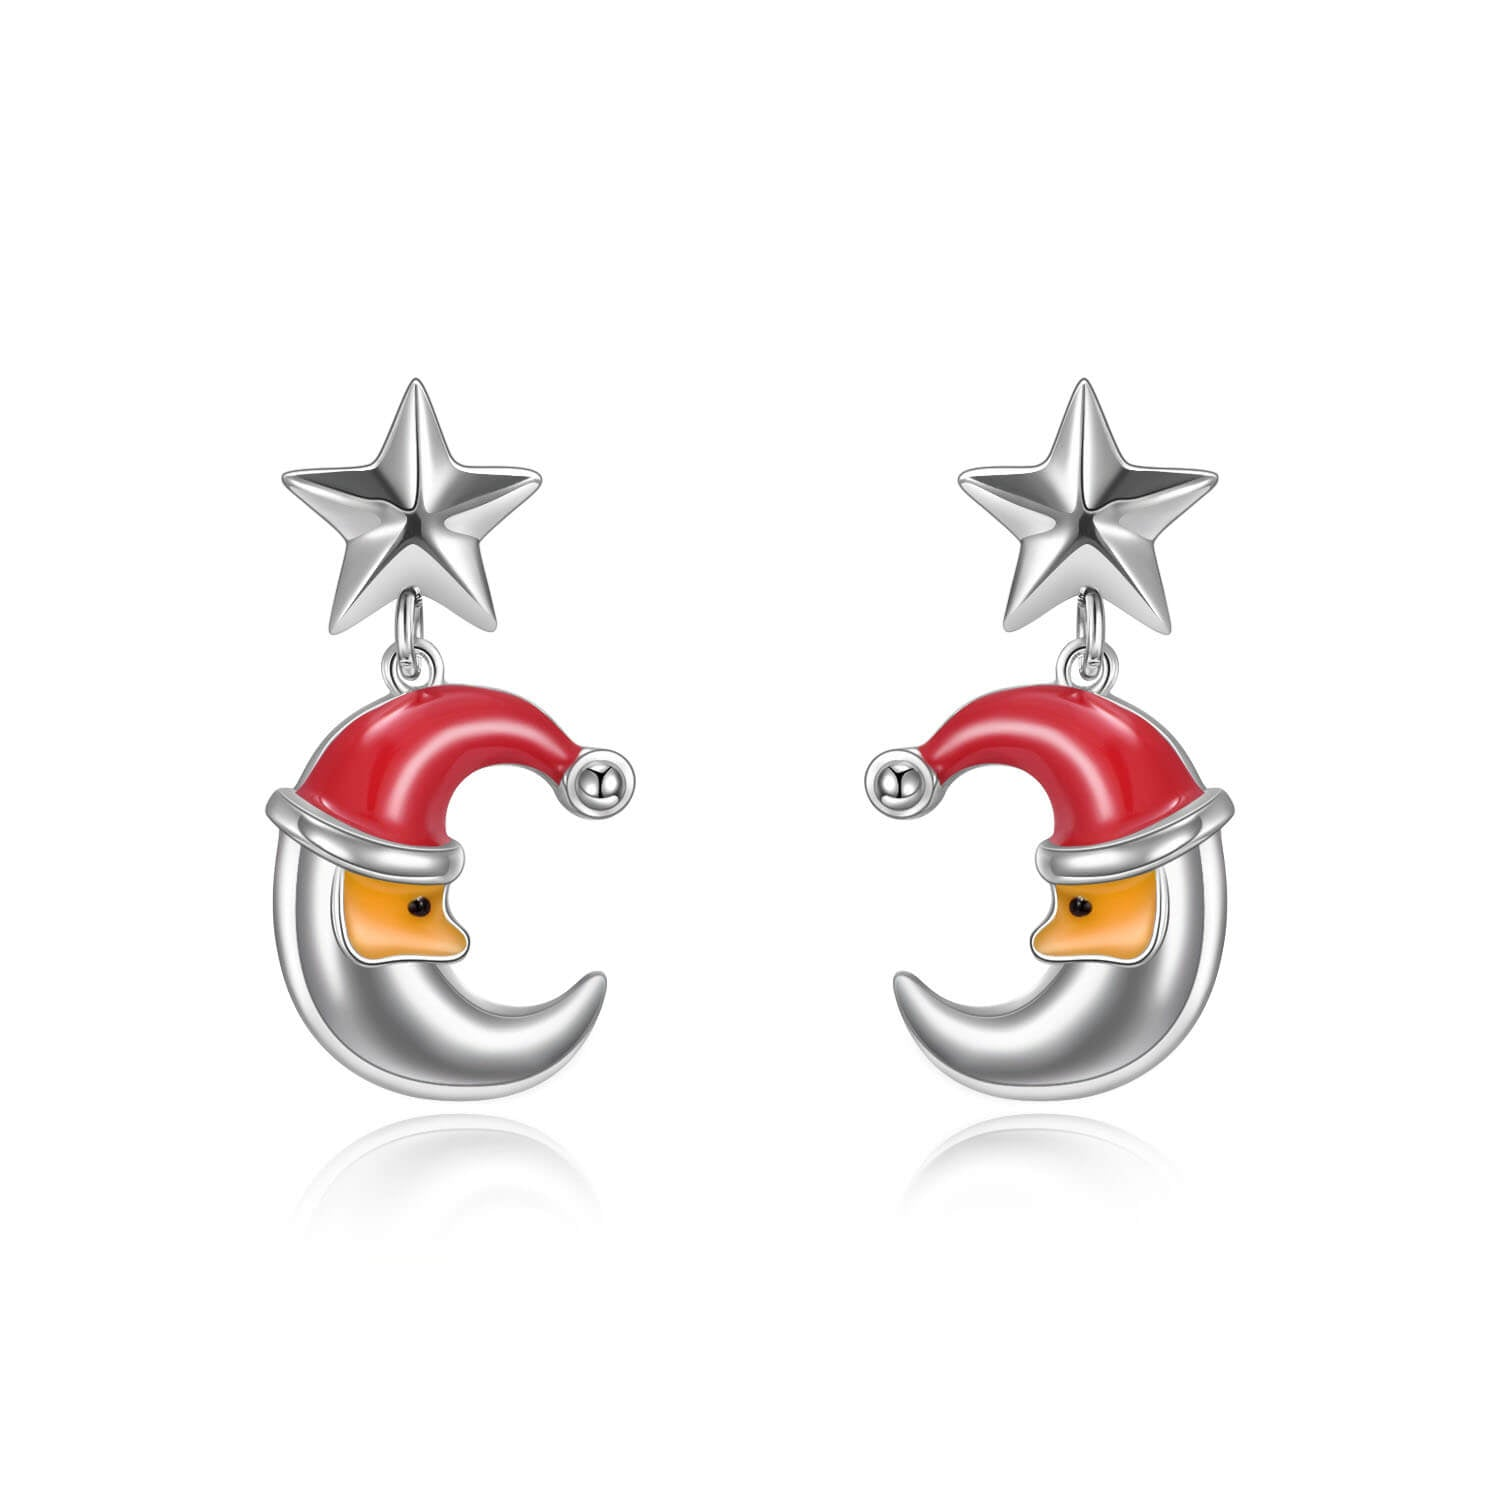 925 Sterling Silver Moon Star Stud Earrings Gift For Girl - onlyone